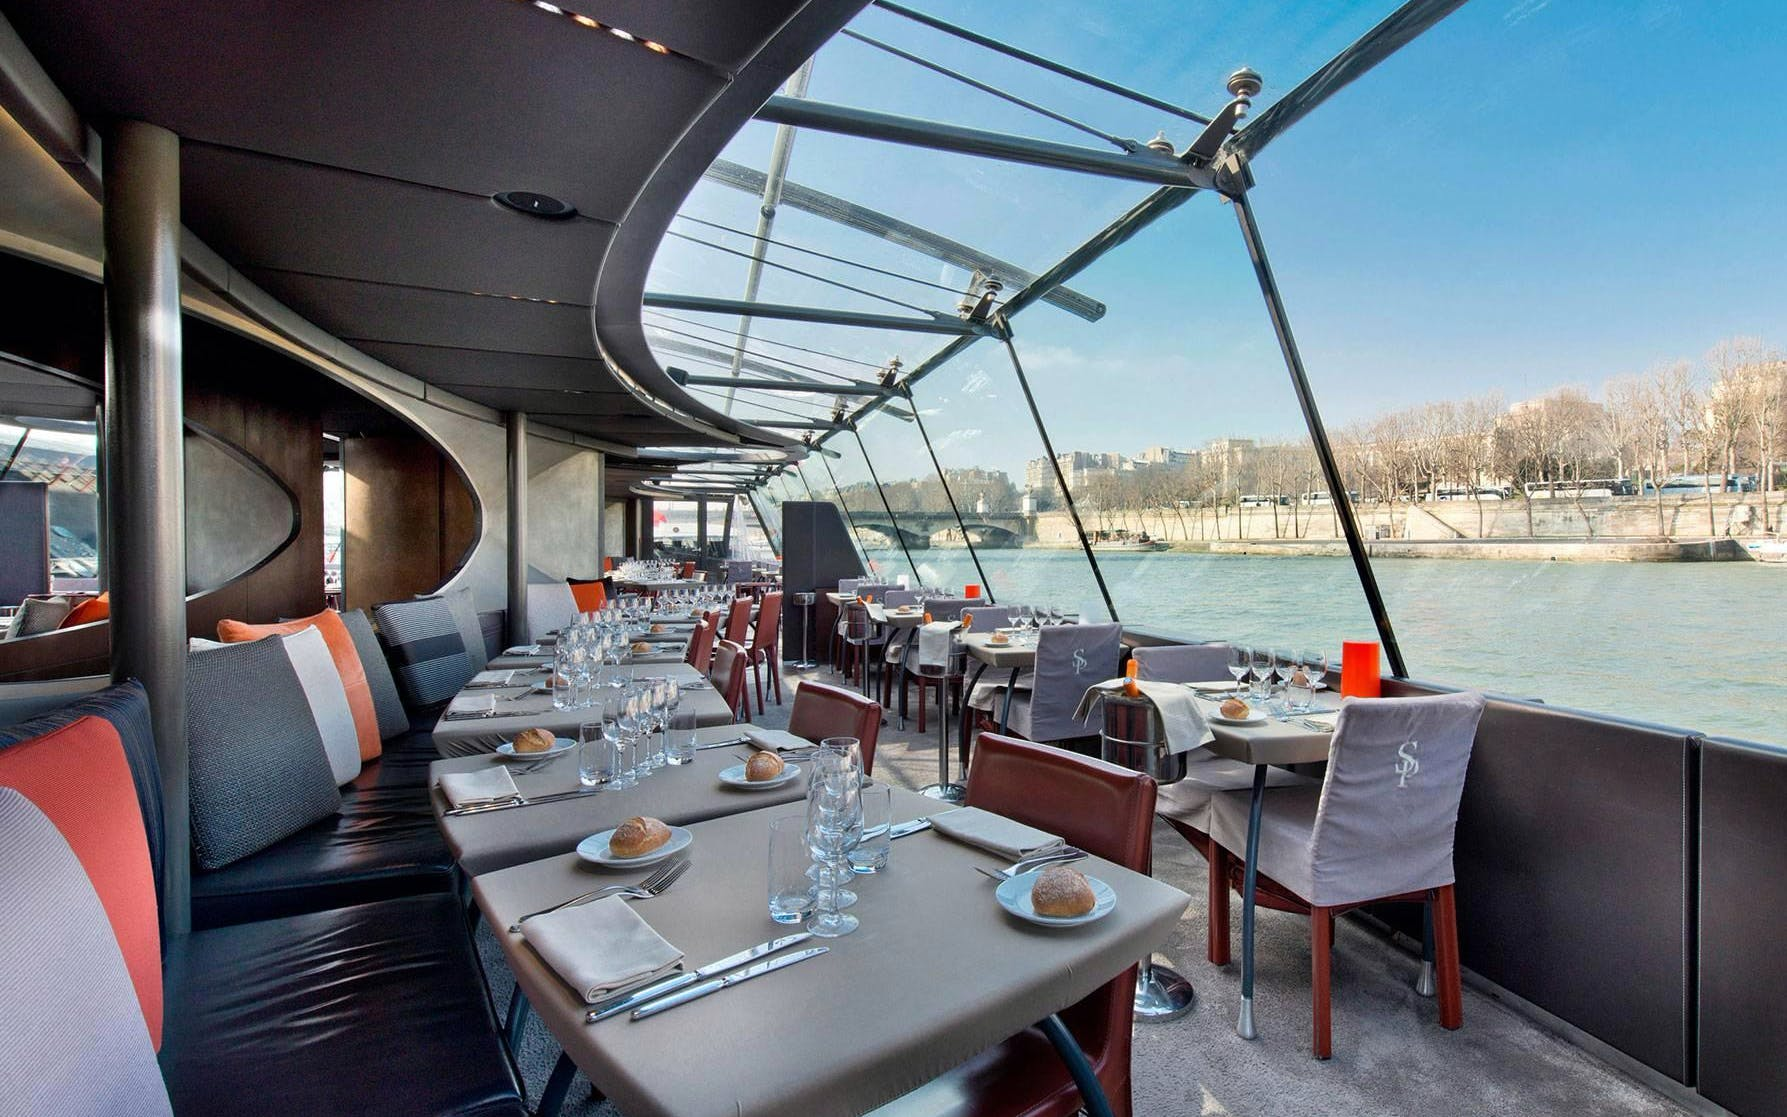 Bateaux Parisiens Seine River Lunch Cruise with Live Music & Audio Commentary